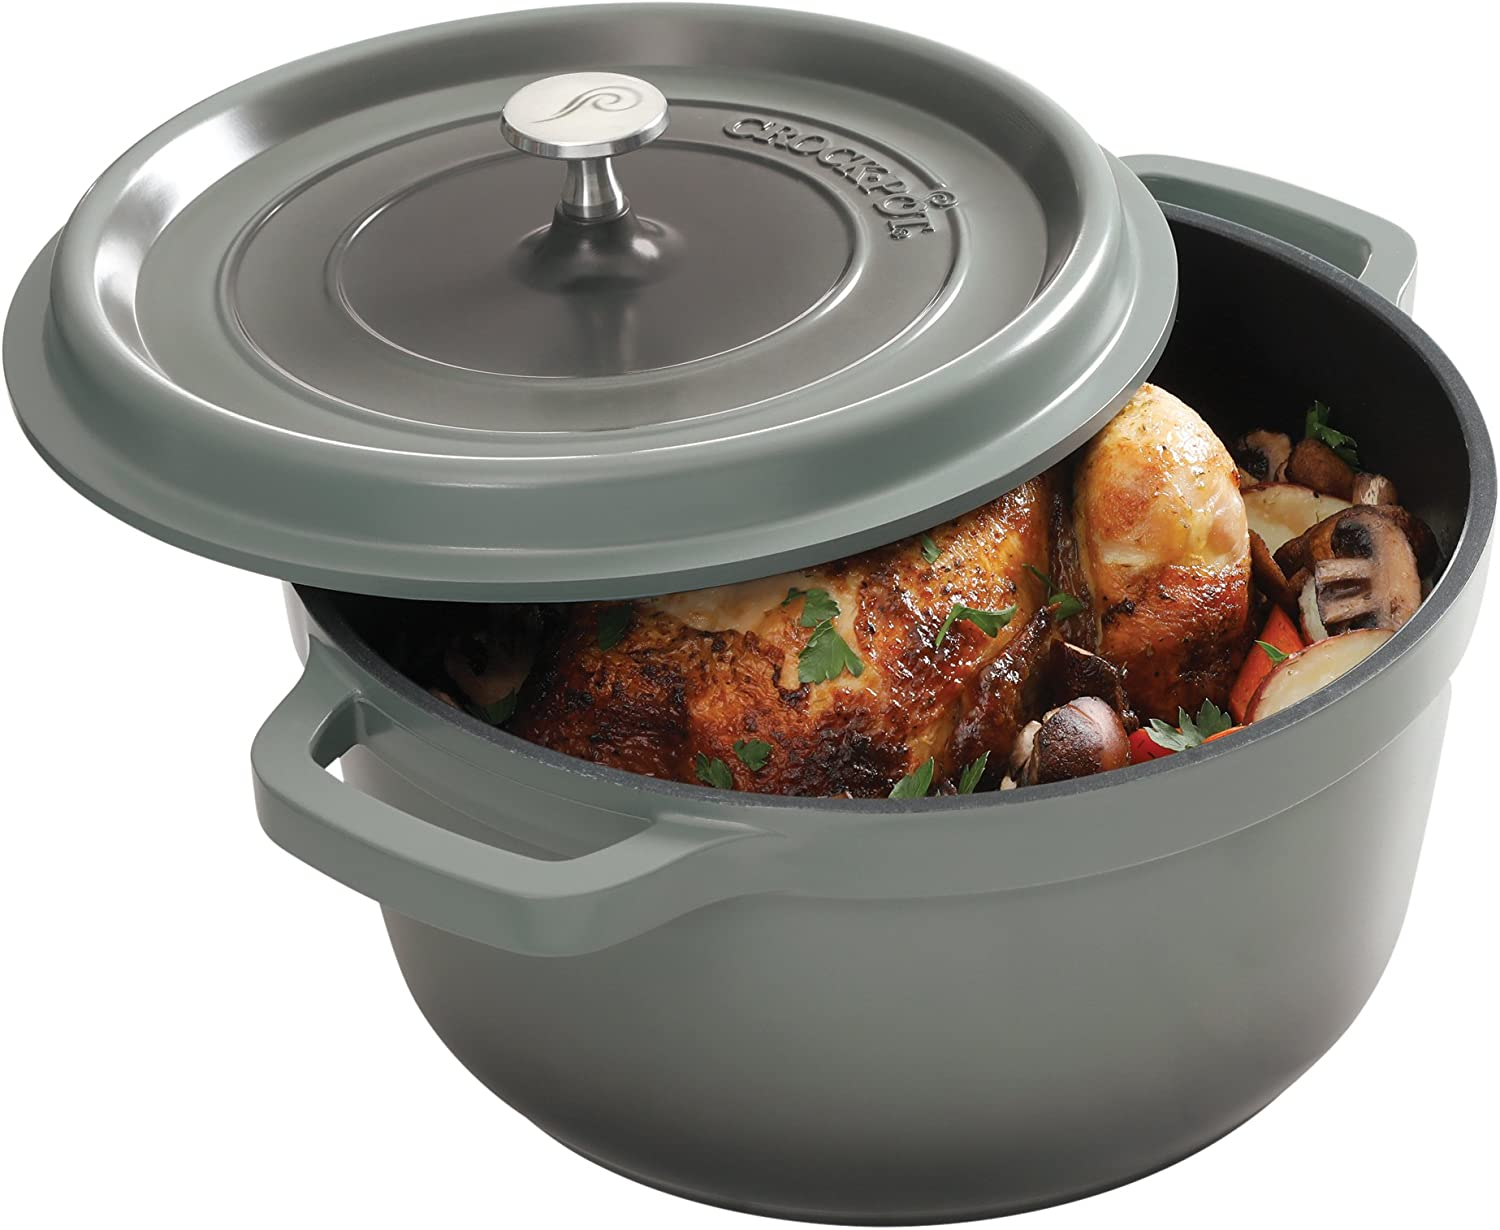 Crock Pot 79566.02 Edmound 5 Quart Cast Aluminum Dutch Oven with Lid, Gradient Grey